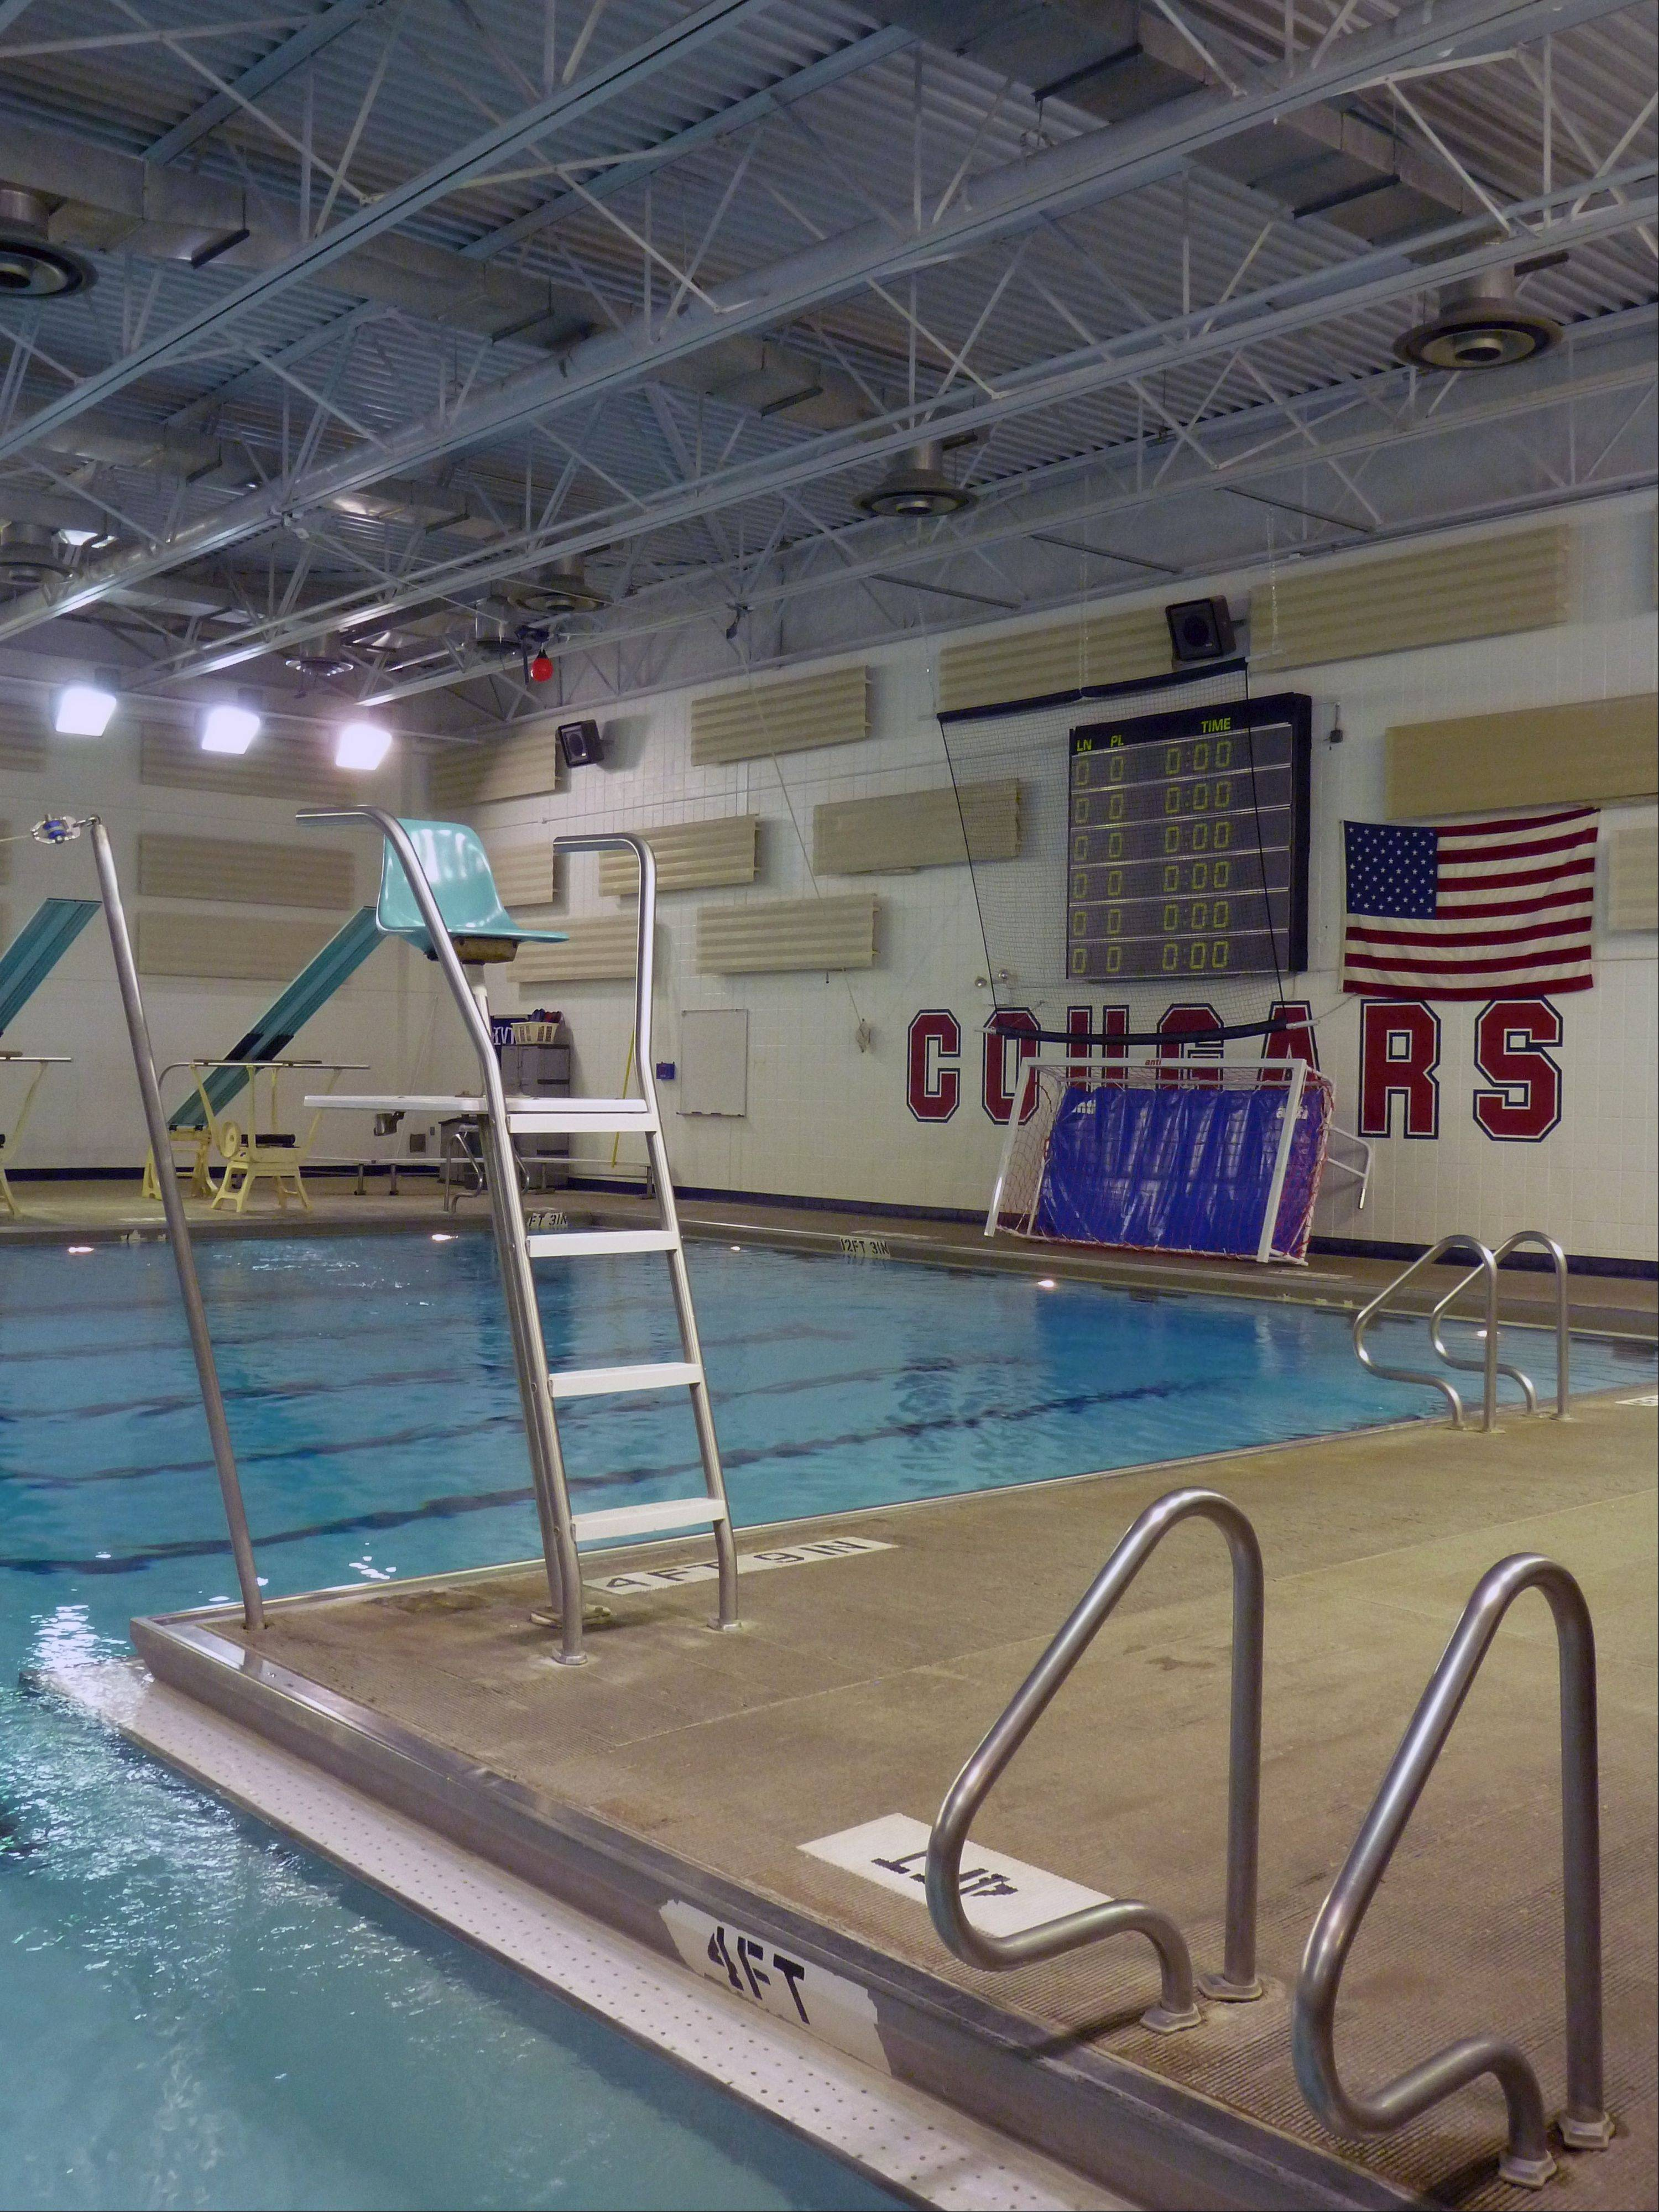 This is a right angle view of the pool at Conant High School, which will be the first of District 211's five high schools to receive renovations in 2014. Coaches say this pool design, which is the same at all the schools, has prevented student athletes from properly training for competition.